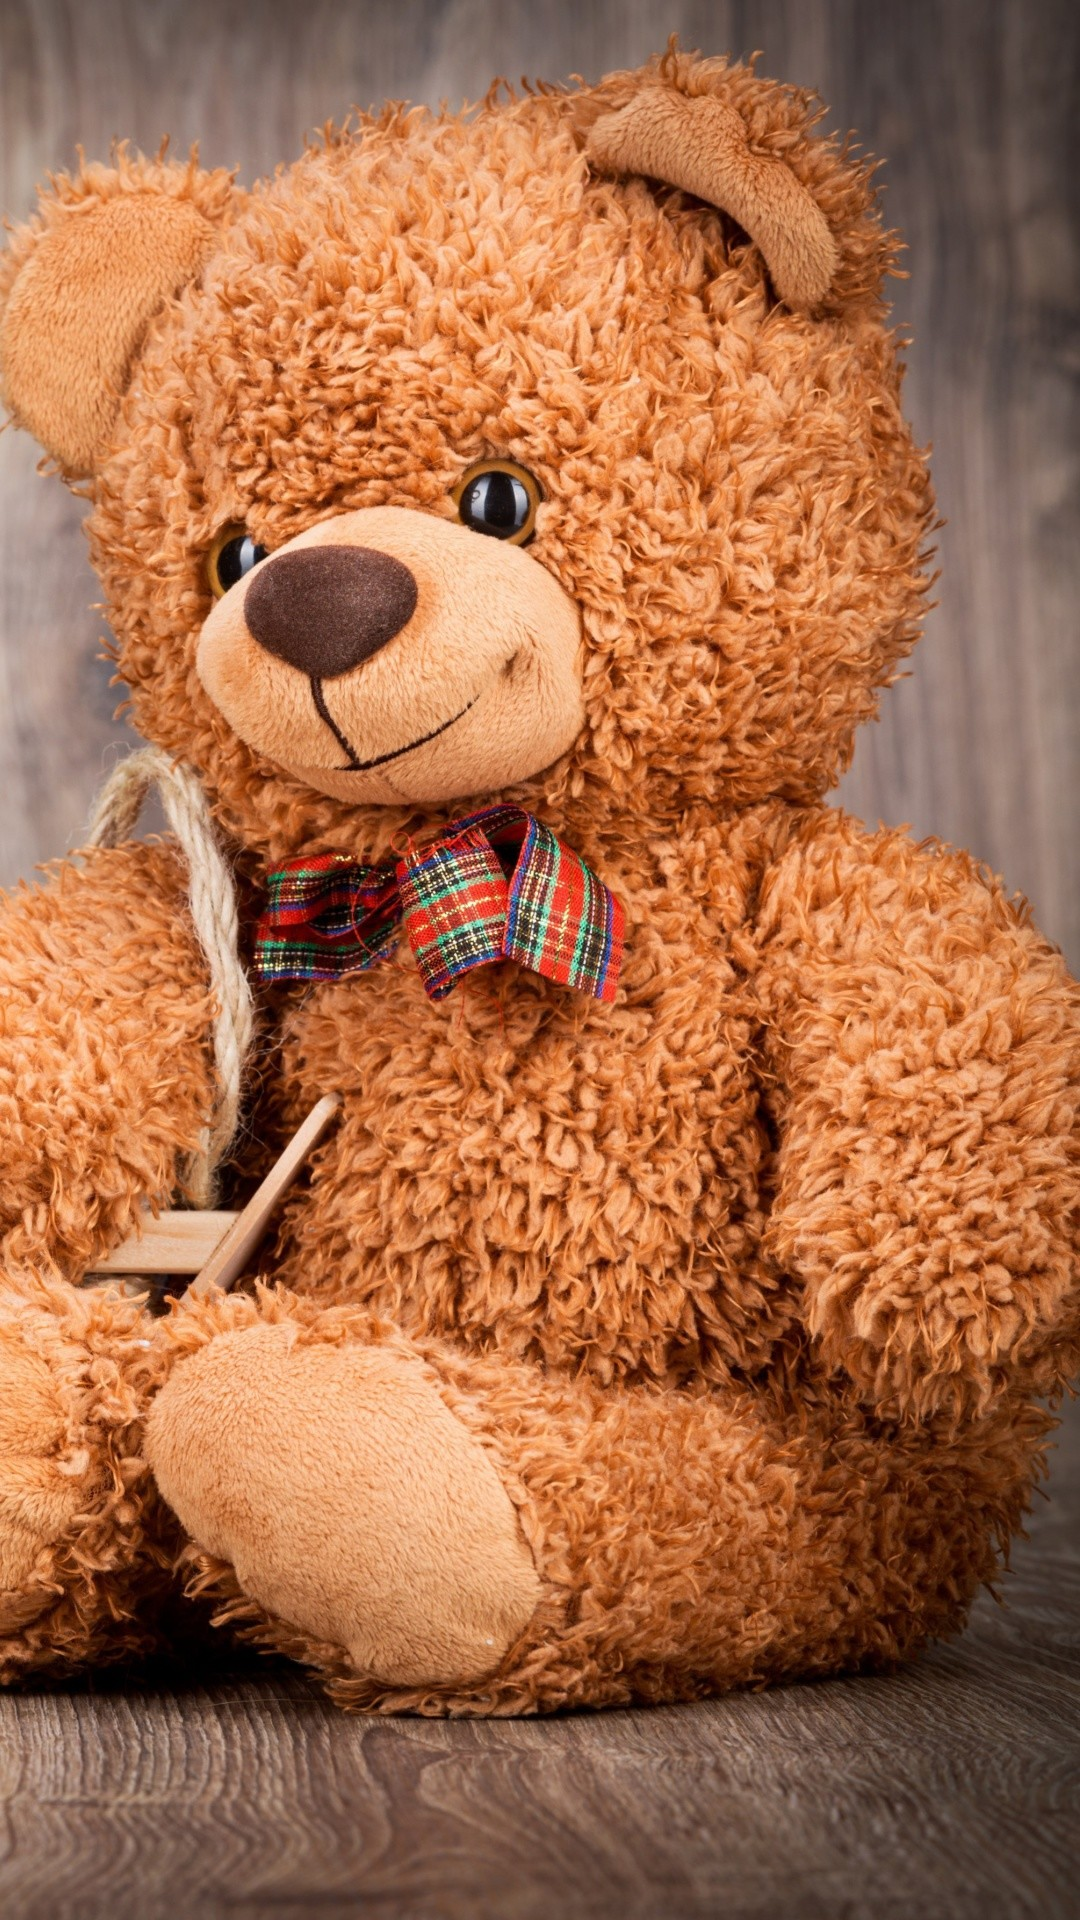 Cute teddy bear wallpaper 50 images 2880x1800 download original wallpaper categoryother download 2560x1600 cute teddy bears voltagebd Image collections